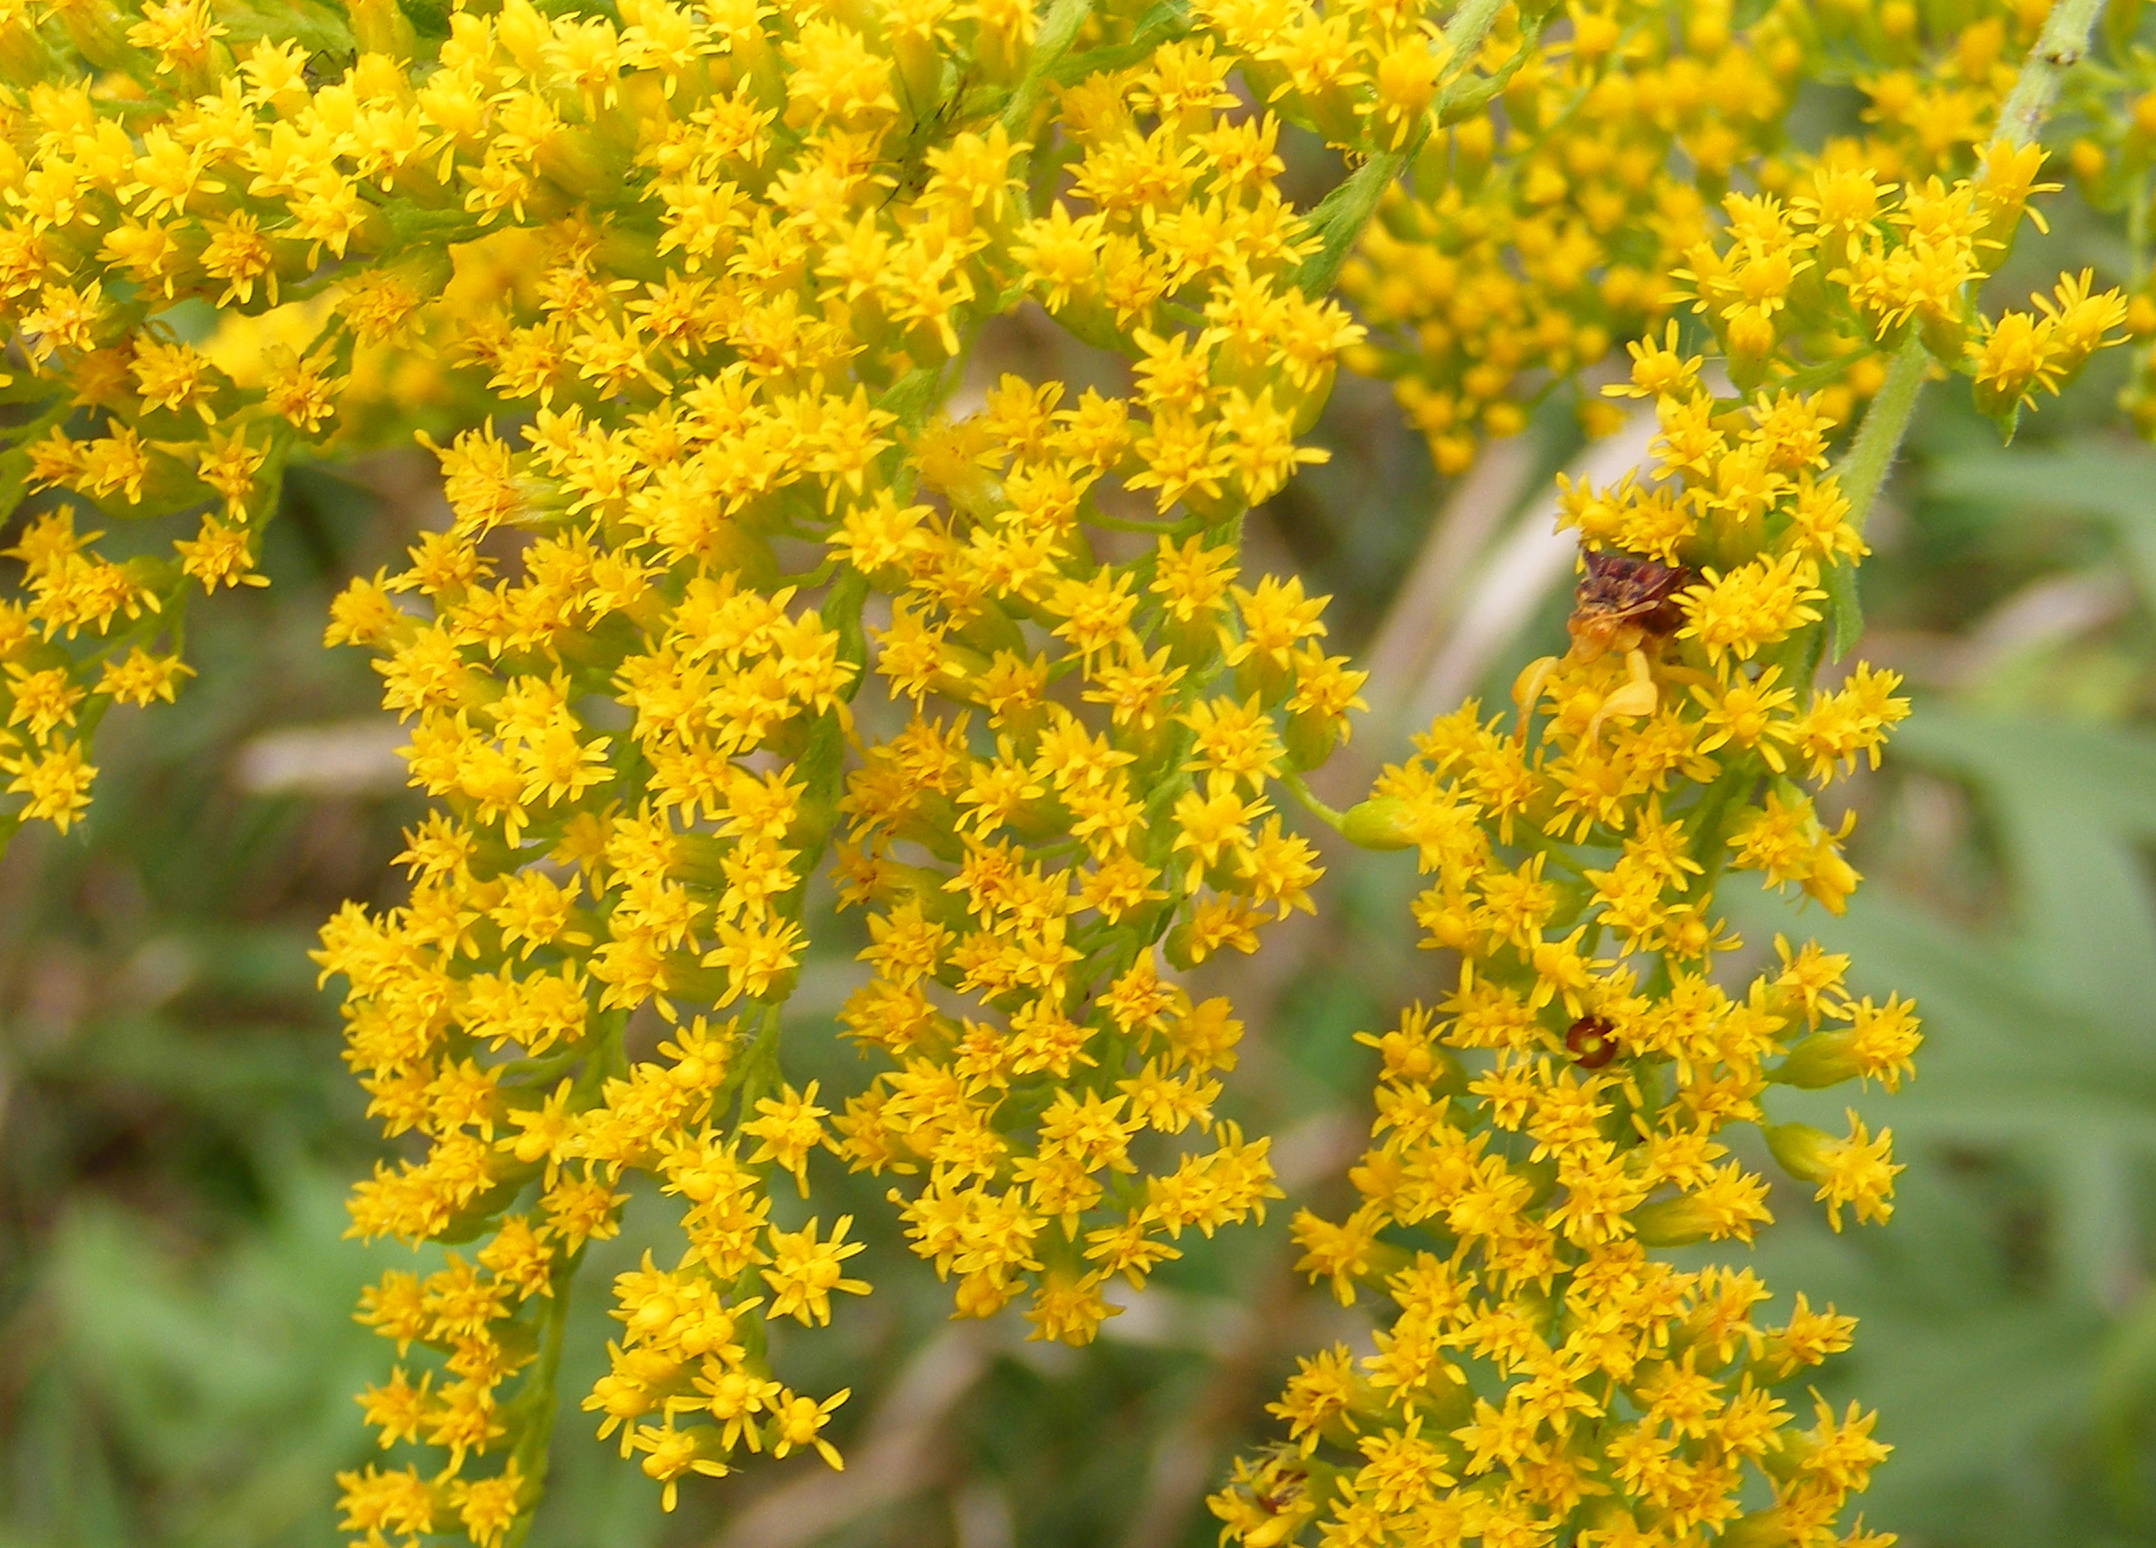 Plant Insect Interaction Jagged ambush bugs on goldenrod